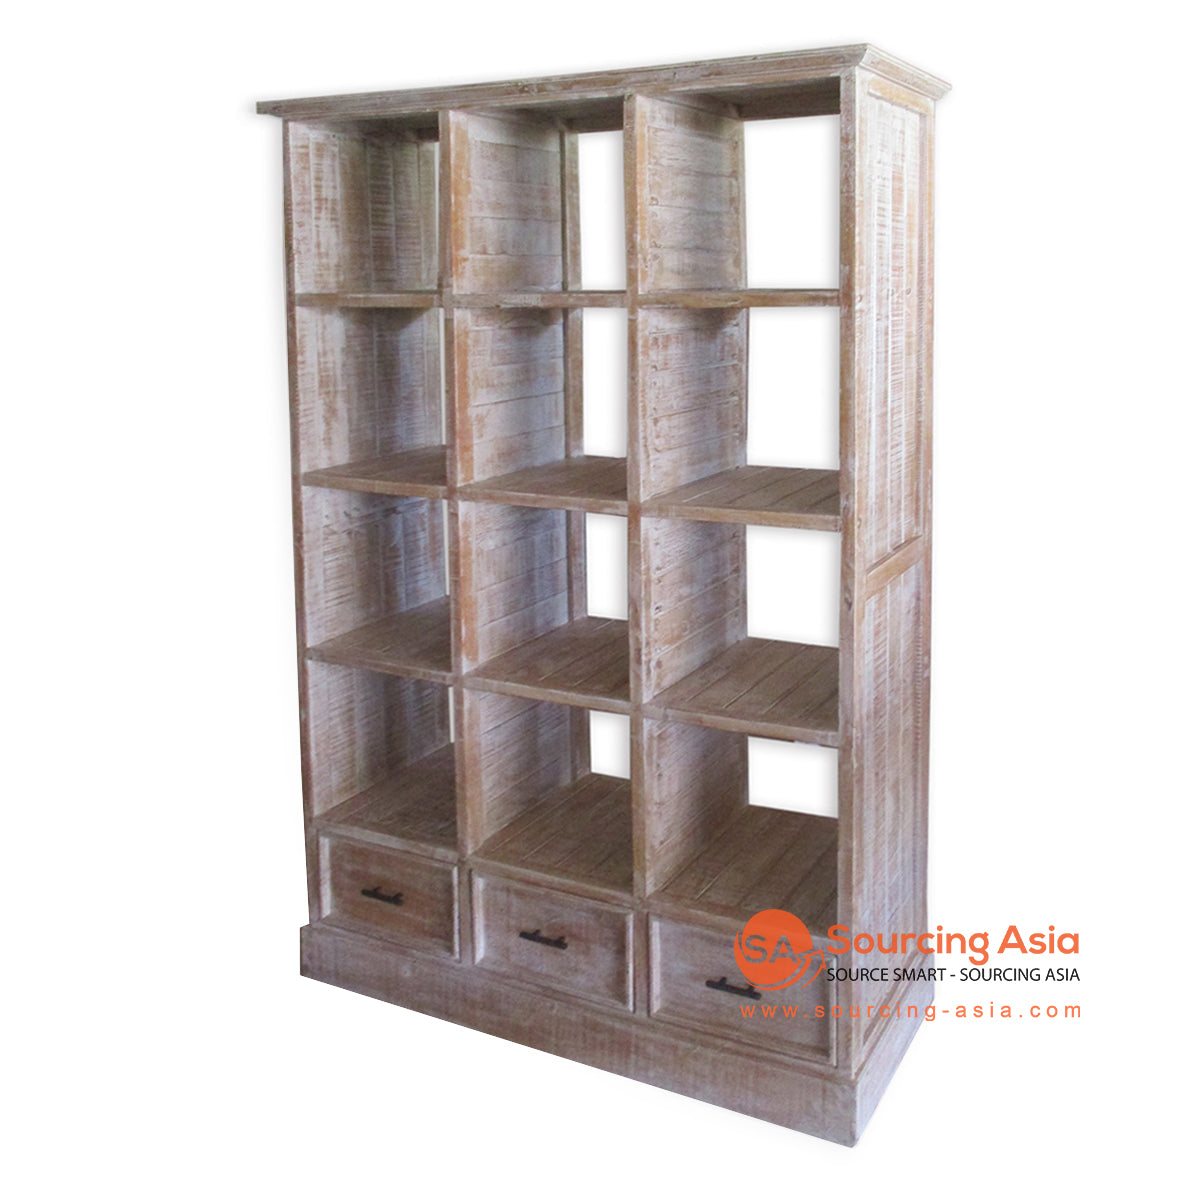 THE149BW WOODEN BOOK RACK WITH 3 DRAWERS